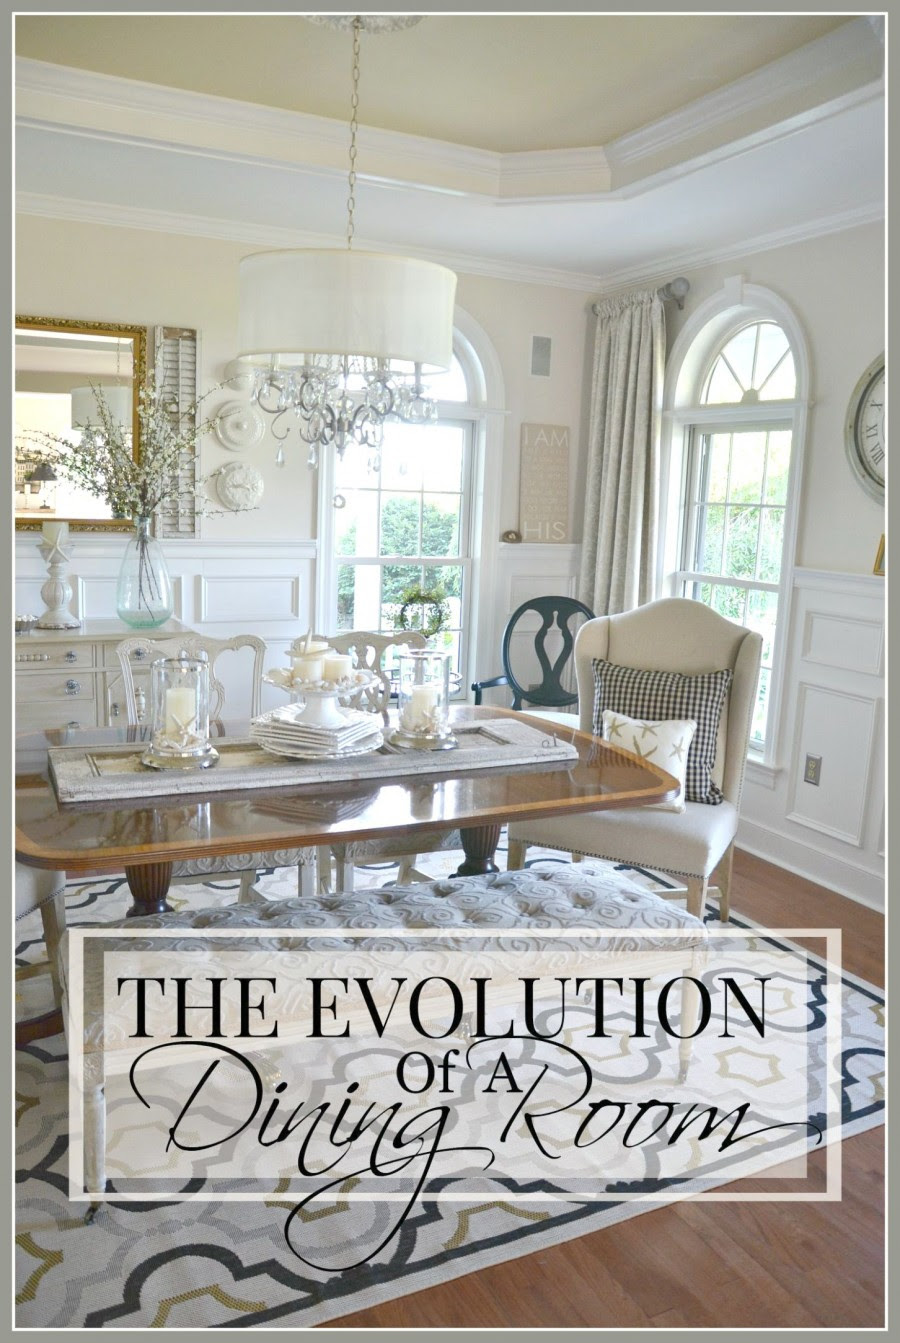 EVOLUTION OF A DINING ROOM- From gut to makeover-stonegableblog.com